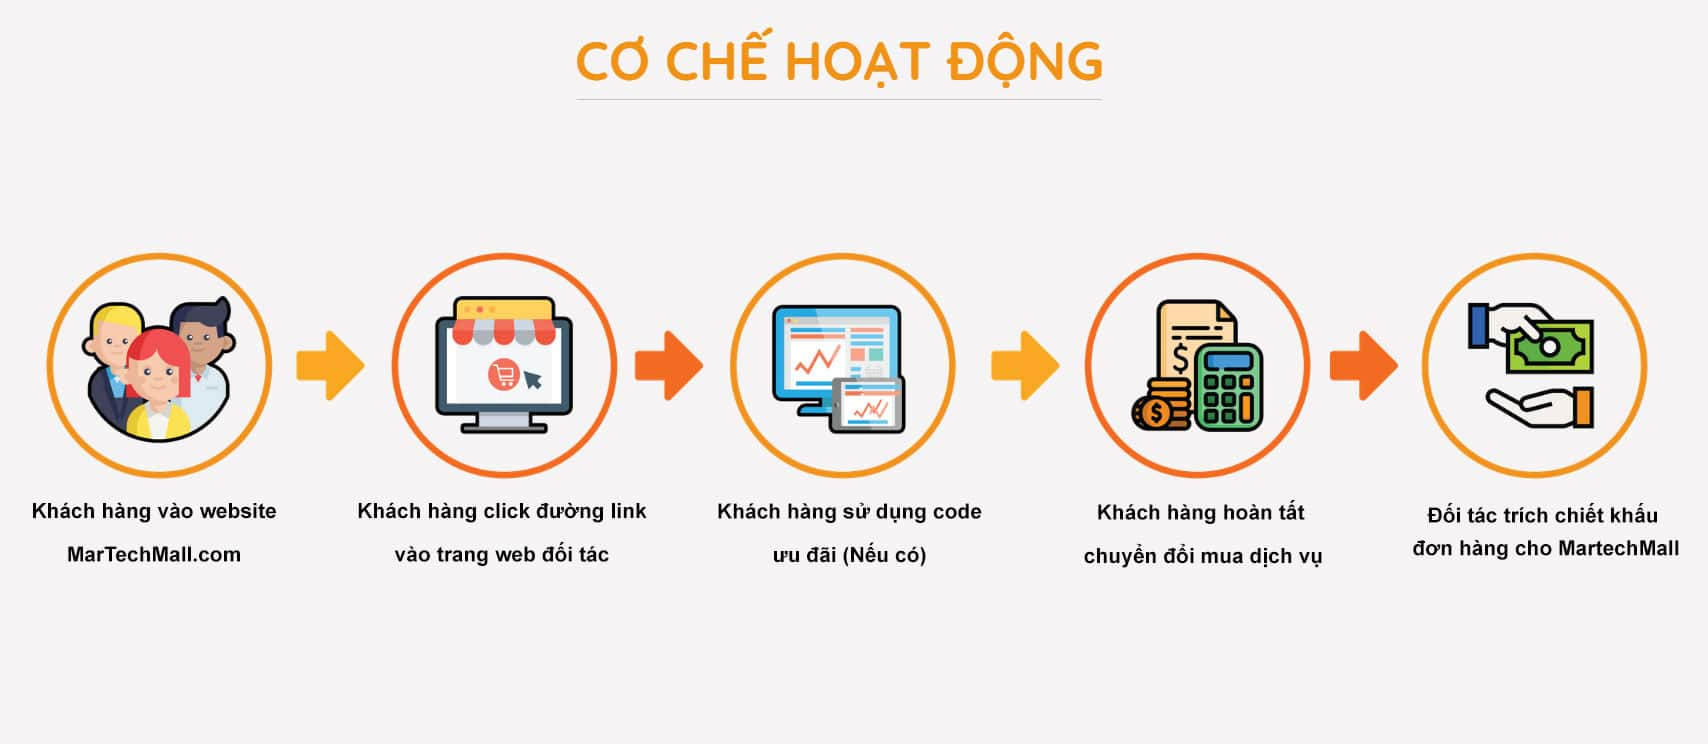 co che hoat dong Martechmall